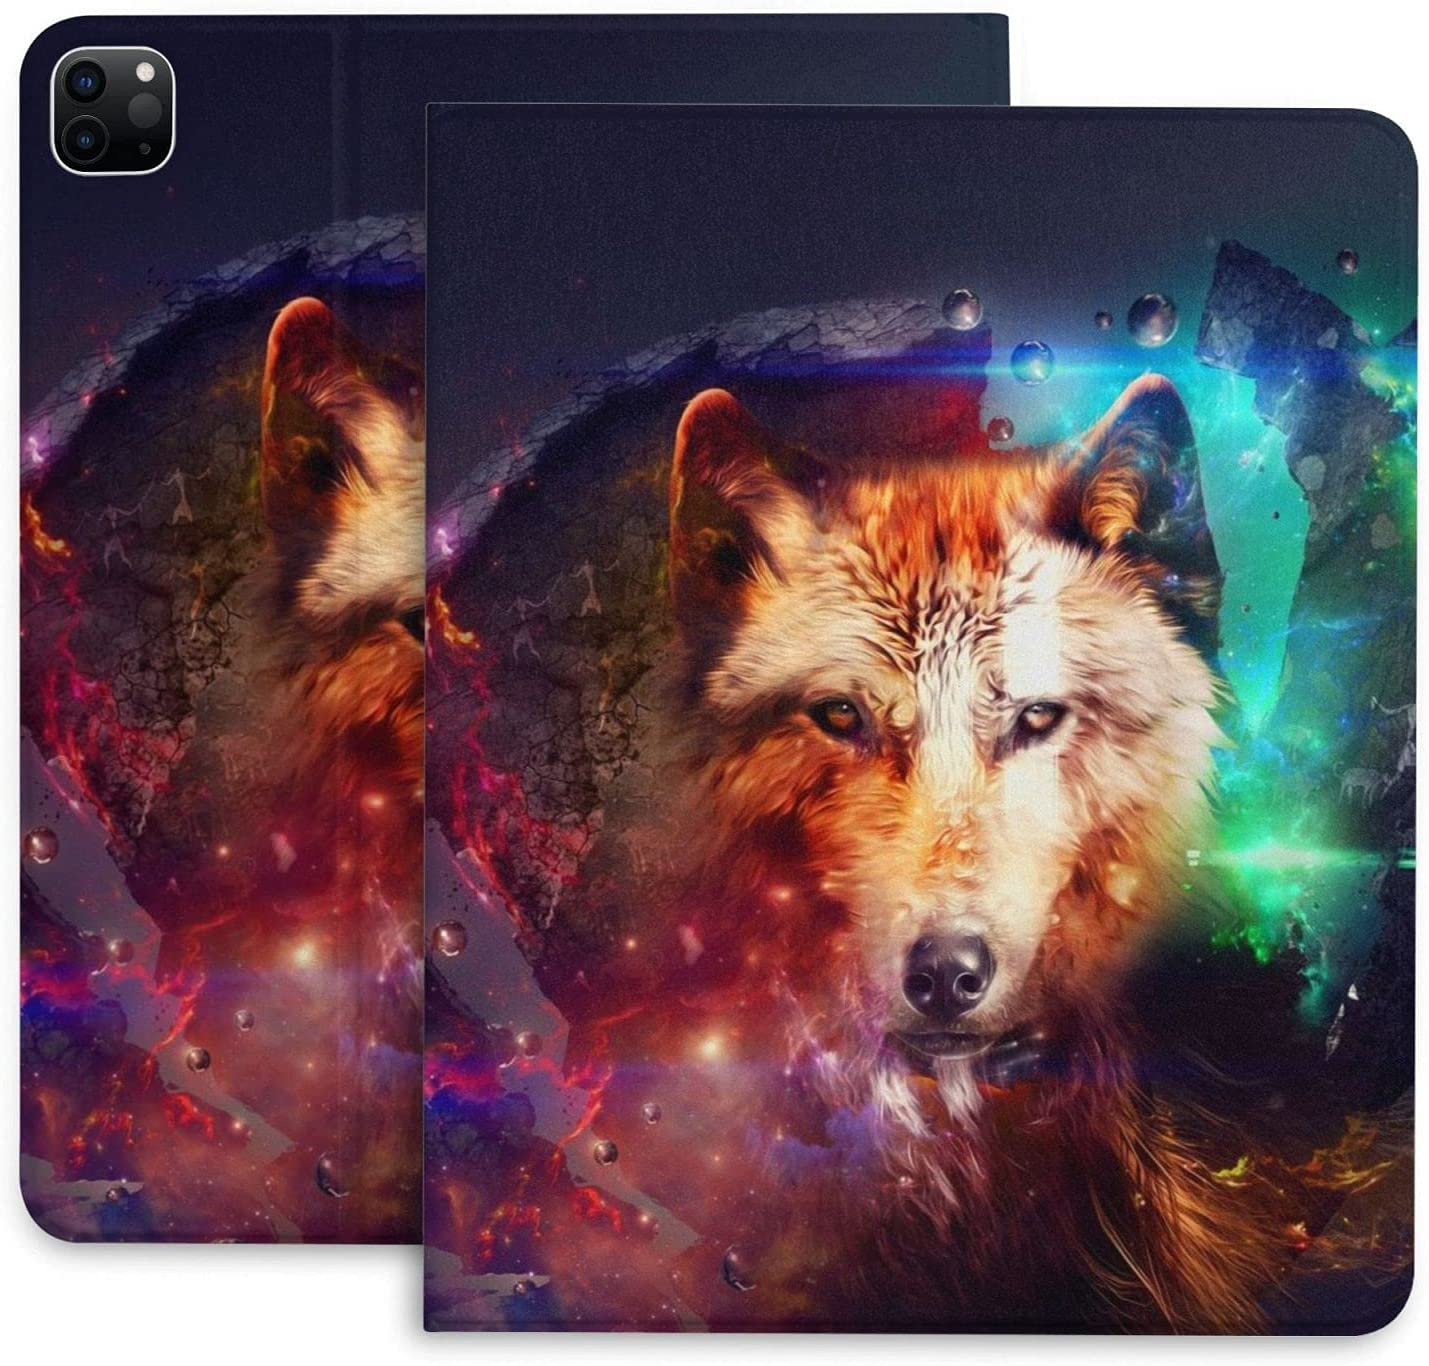 Amazing Galaxy Wolf Case for iPad in We OFFer at cheap prices 4th Gen 2020 12.9 Pro Award